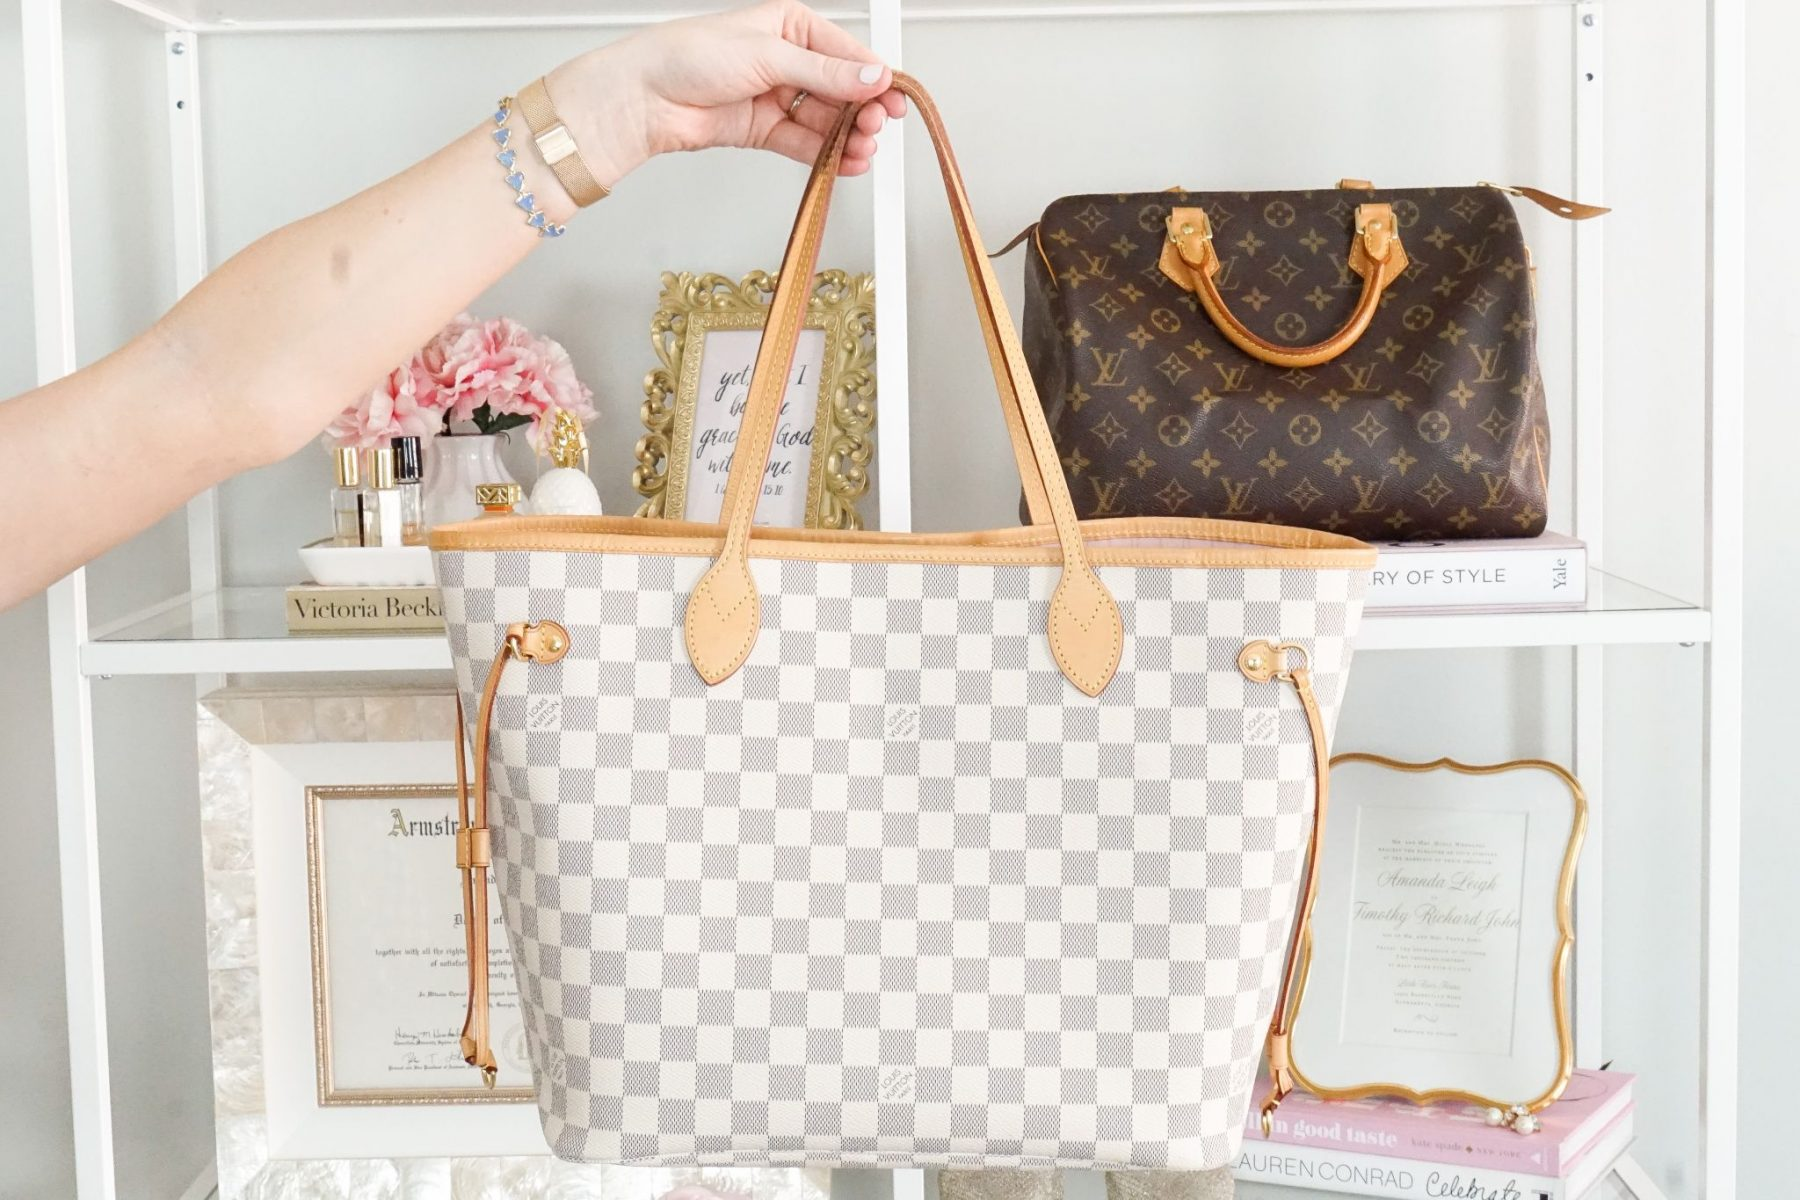 ef46fbbfc013 Louis Vuitton Neverfull MM Review  Pros and Cons and What s Inside